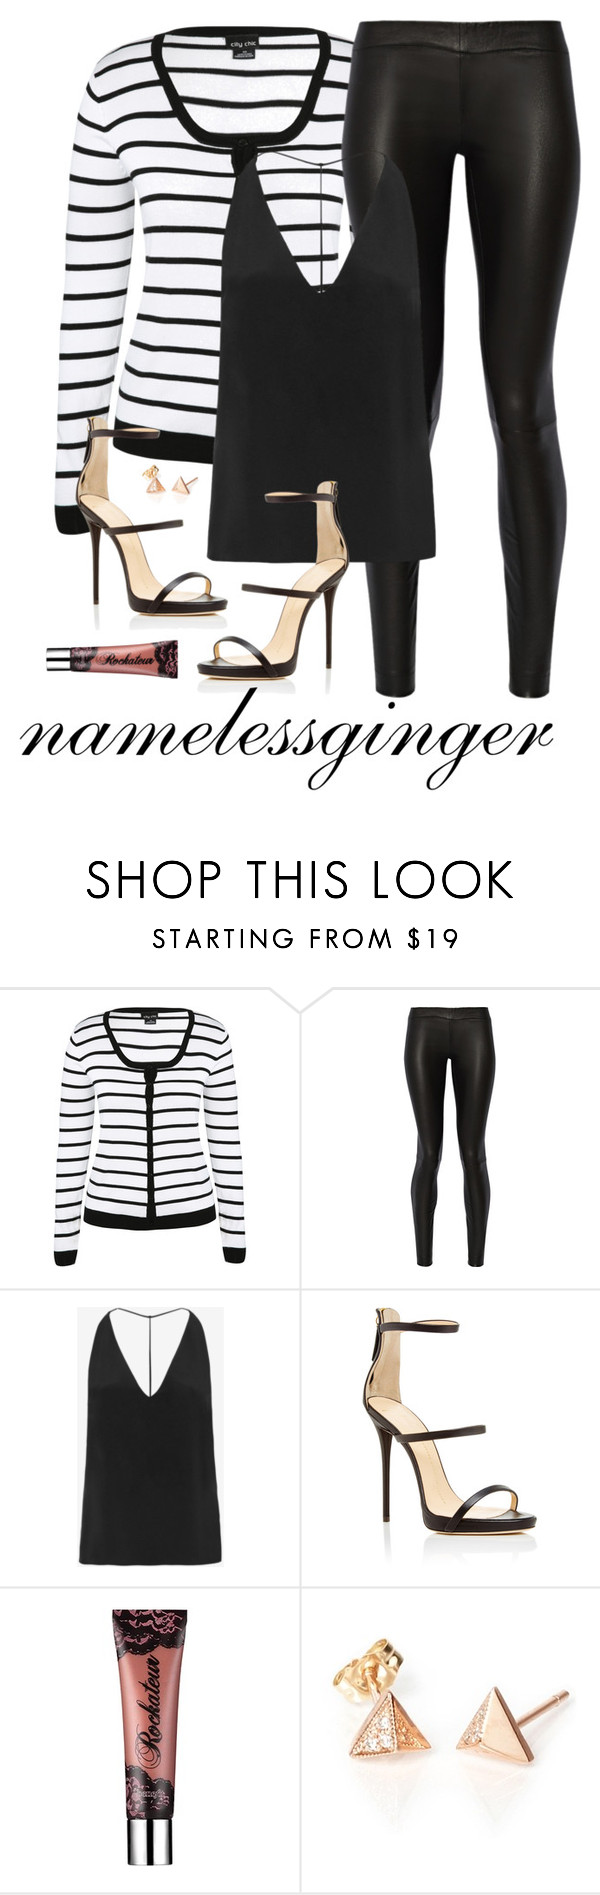 """""""untitled #426"""" by namelessginger ❤ liked on Polyvore featuring City Chic, The Row, Cushnie Et Ochs, Giuseppe Zanotti and Benefit"""